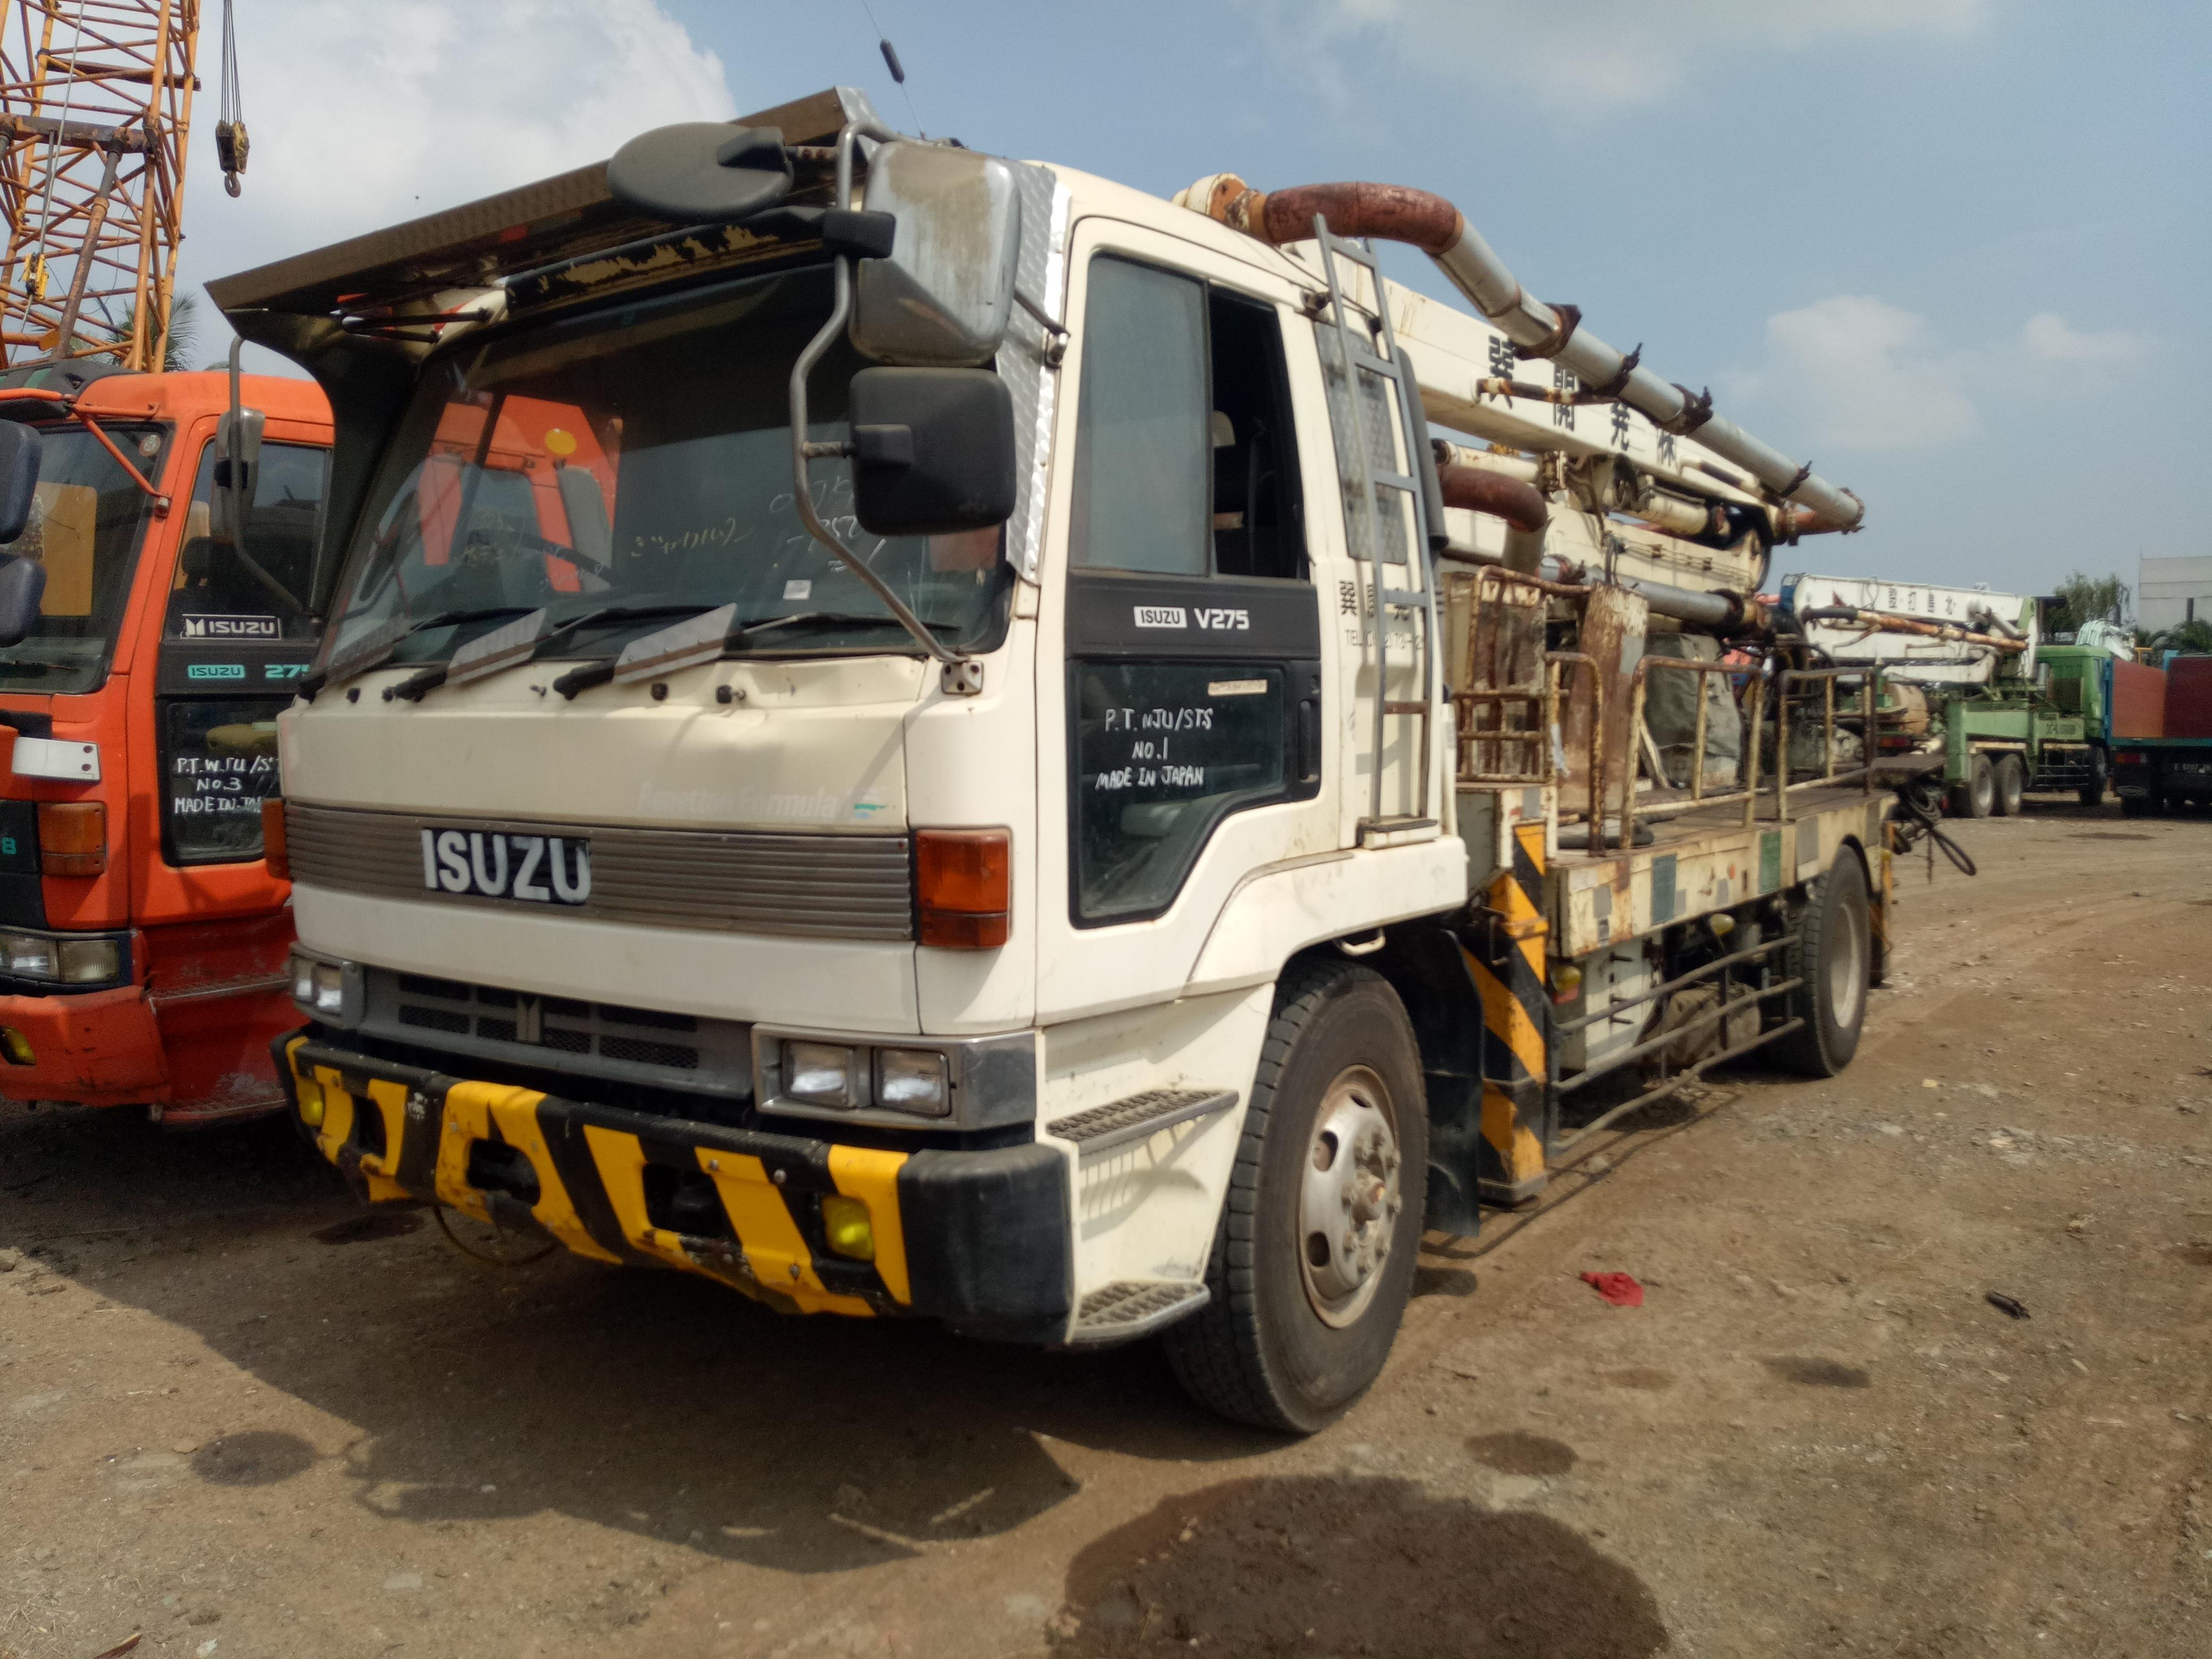 Sell Concrete Pump Truck IHI IPF110B-8E21 21 Meter Boom Build Up EX JAPAN!  from Indonesia by PT  Total Solution Machinery,Cheap Price